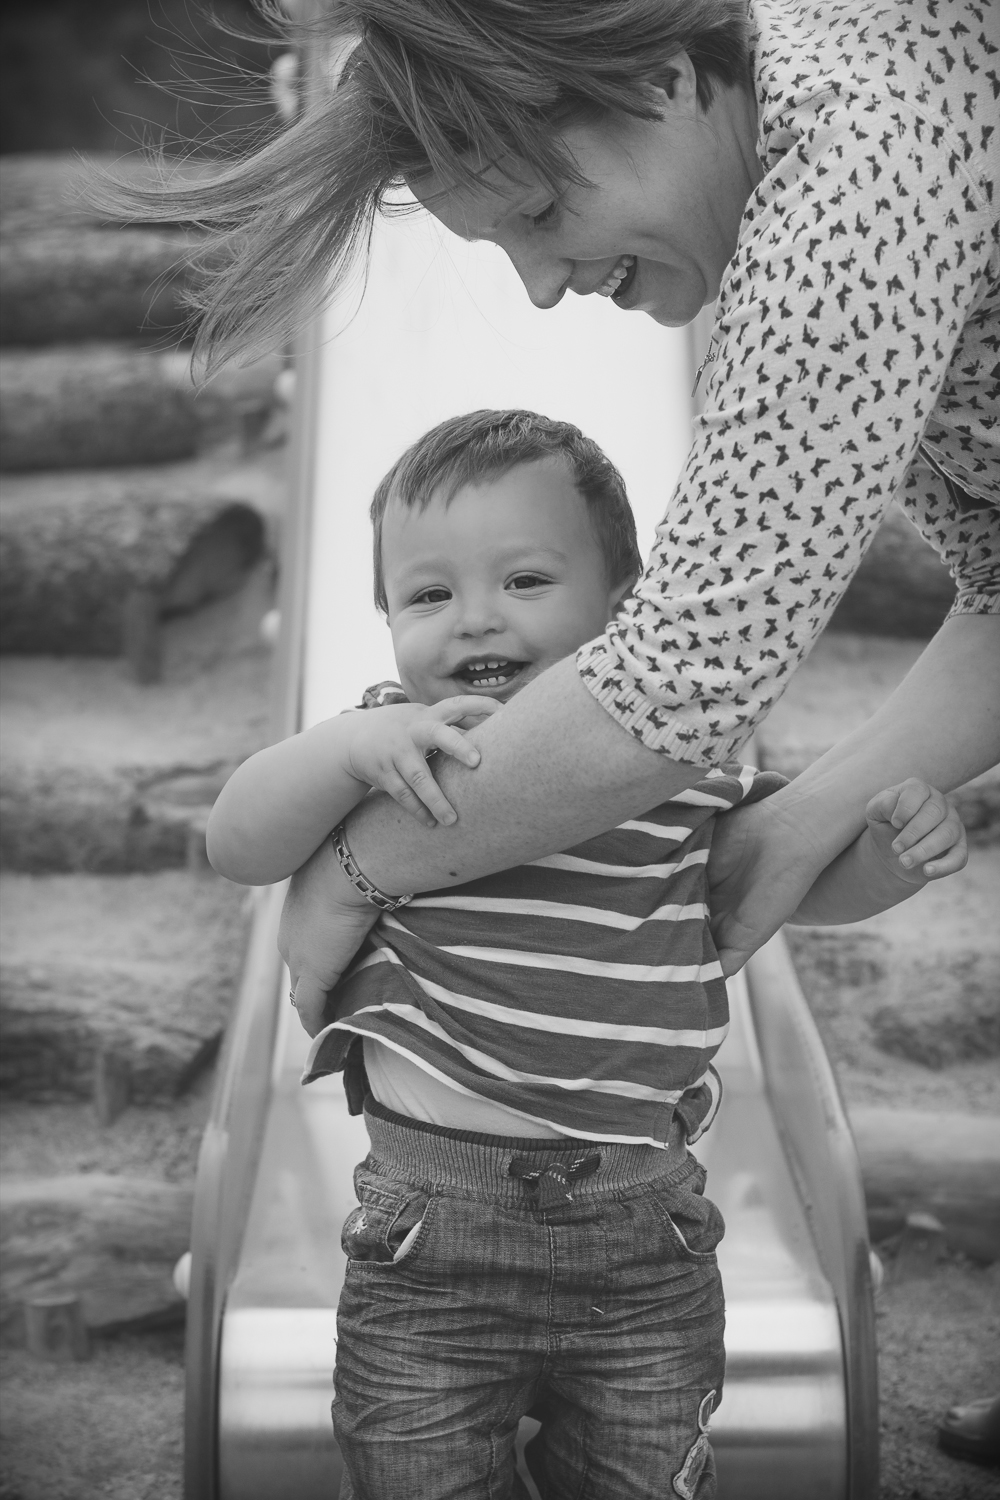 Mum and 2 year old boy on a family photo session at the park - the boy has just jumped off the slide and has been caught in the arms of his mama